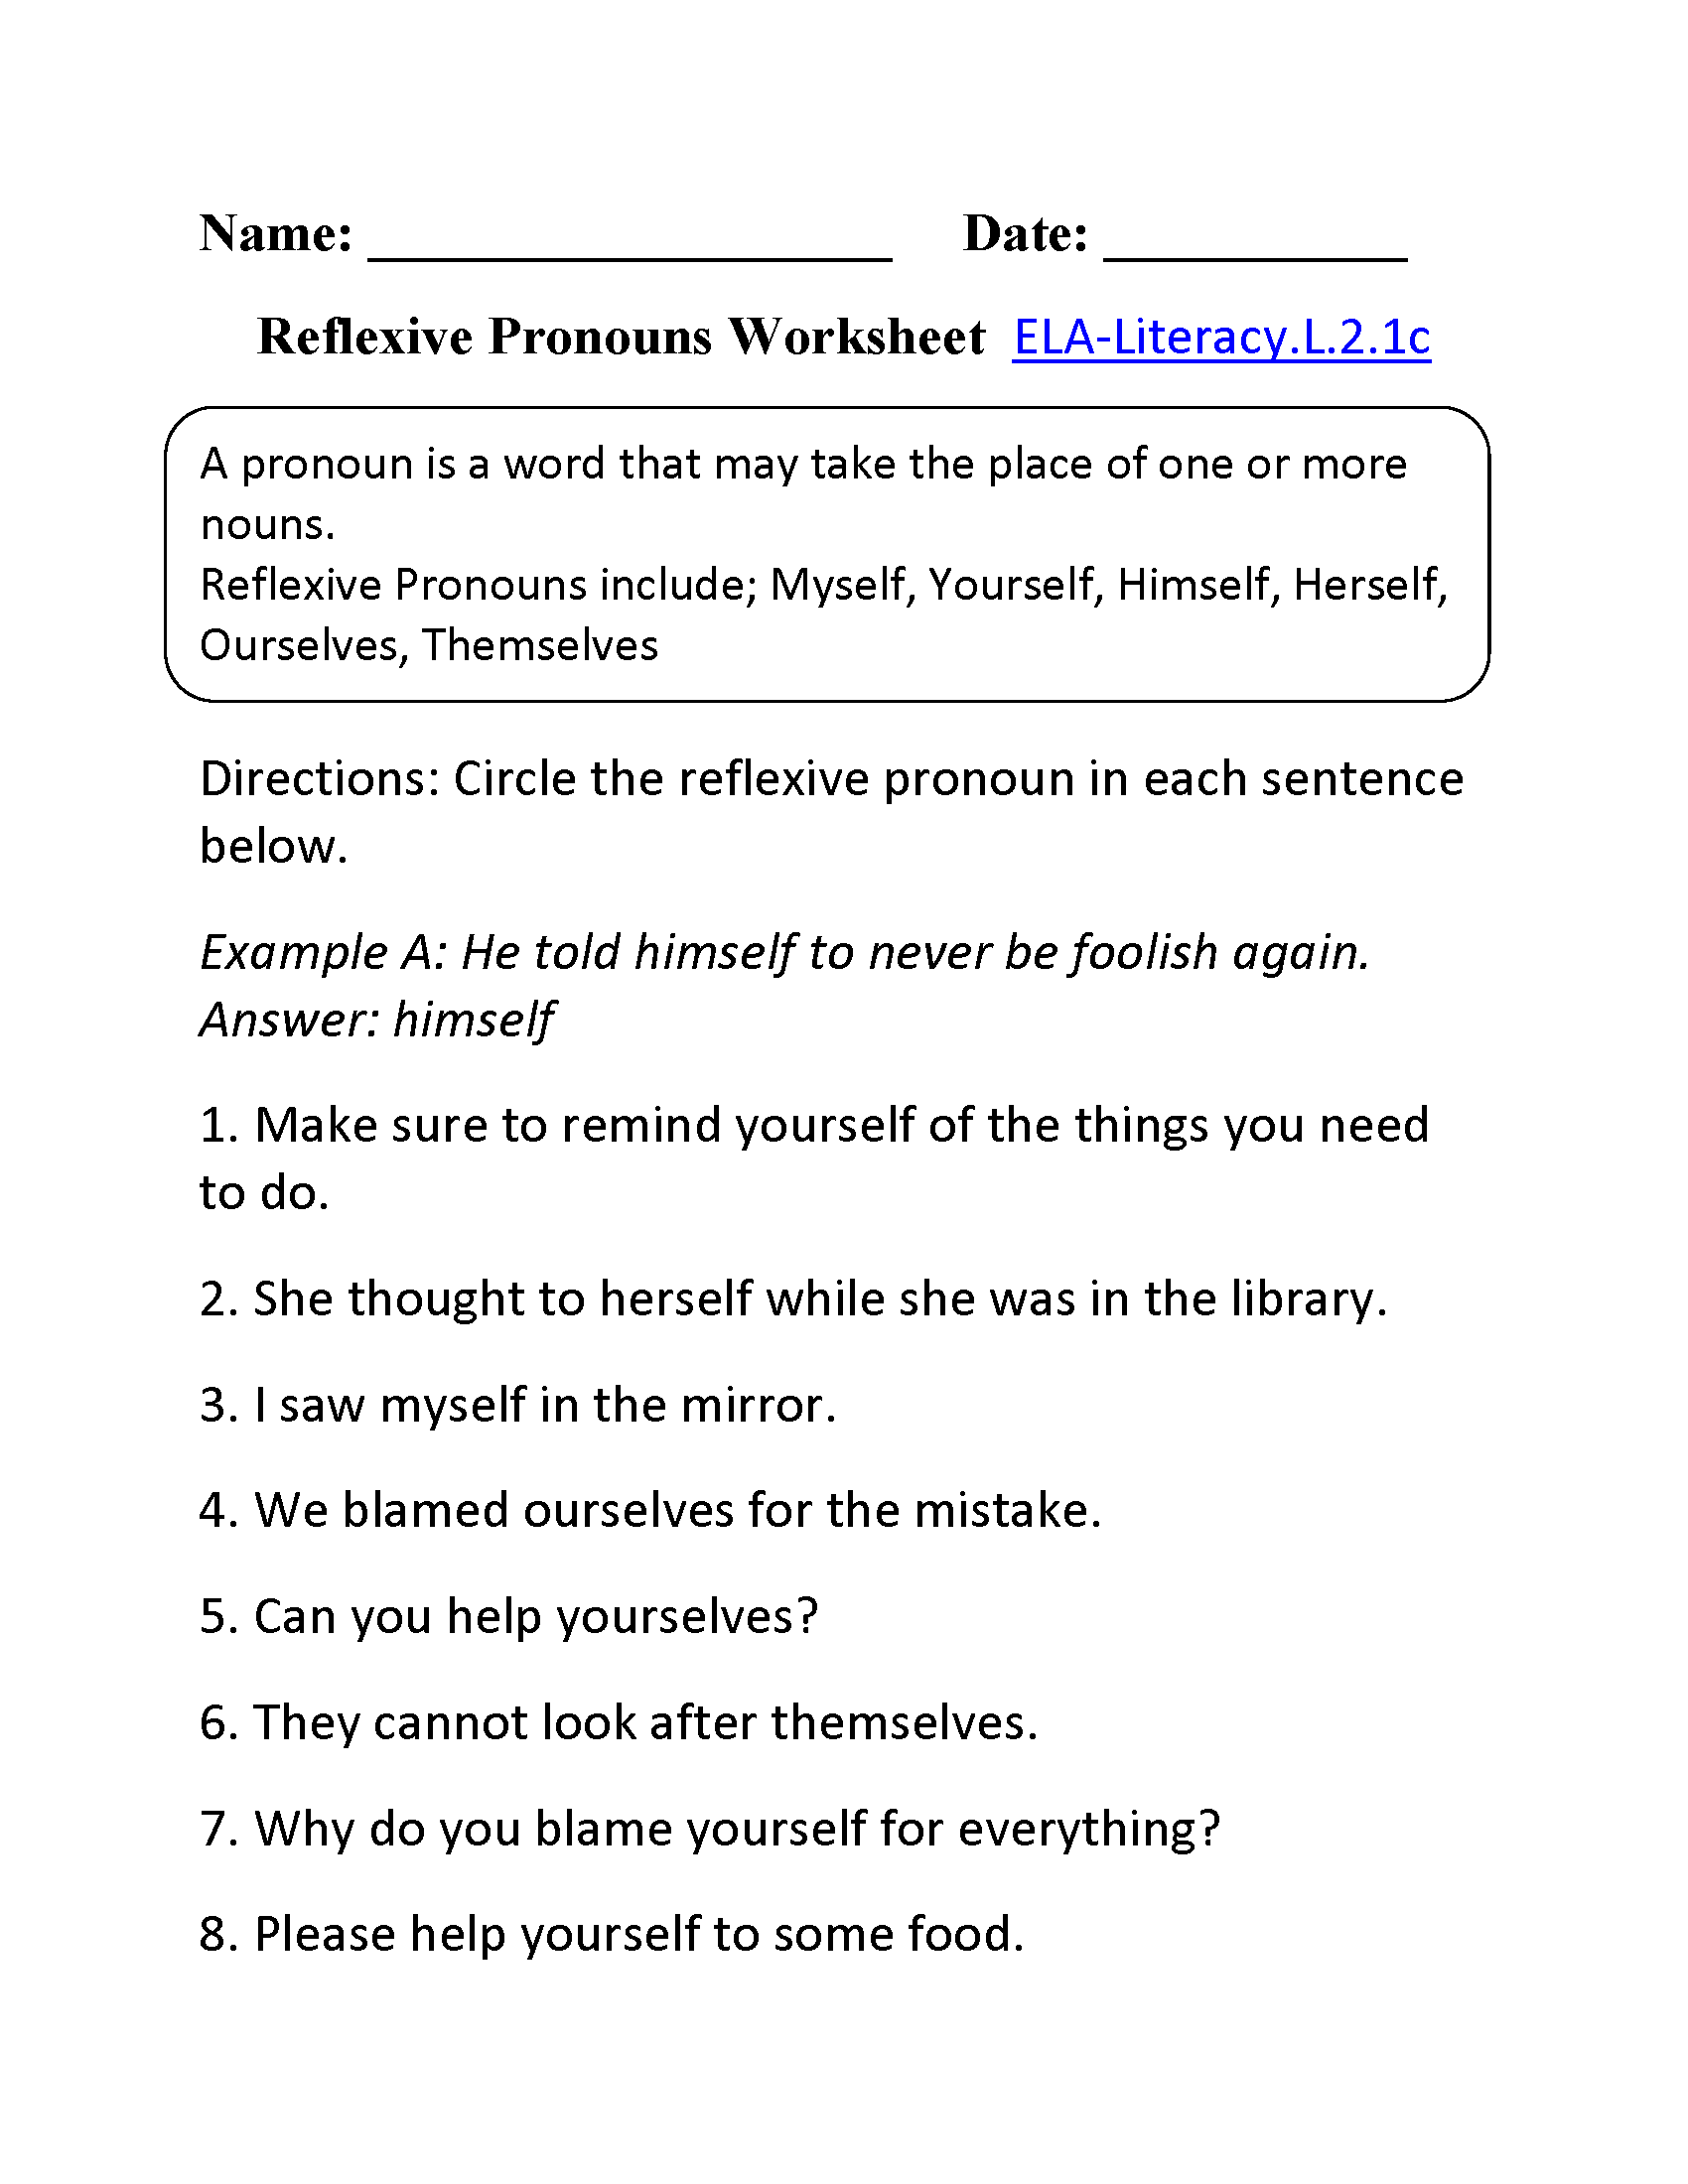 Reflexive Pronouns Worksheet 1 Ela Literacy L 2 1c Language Worksheet